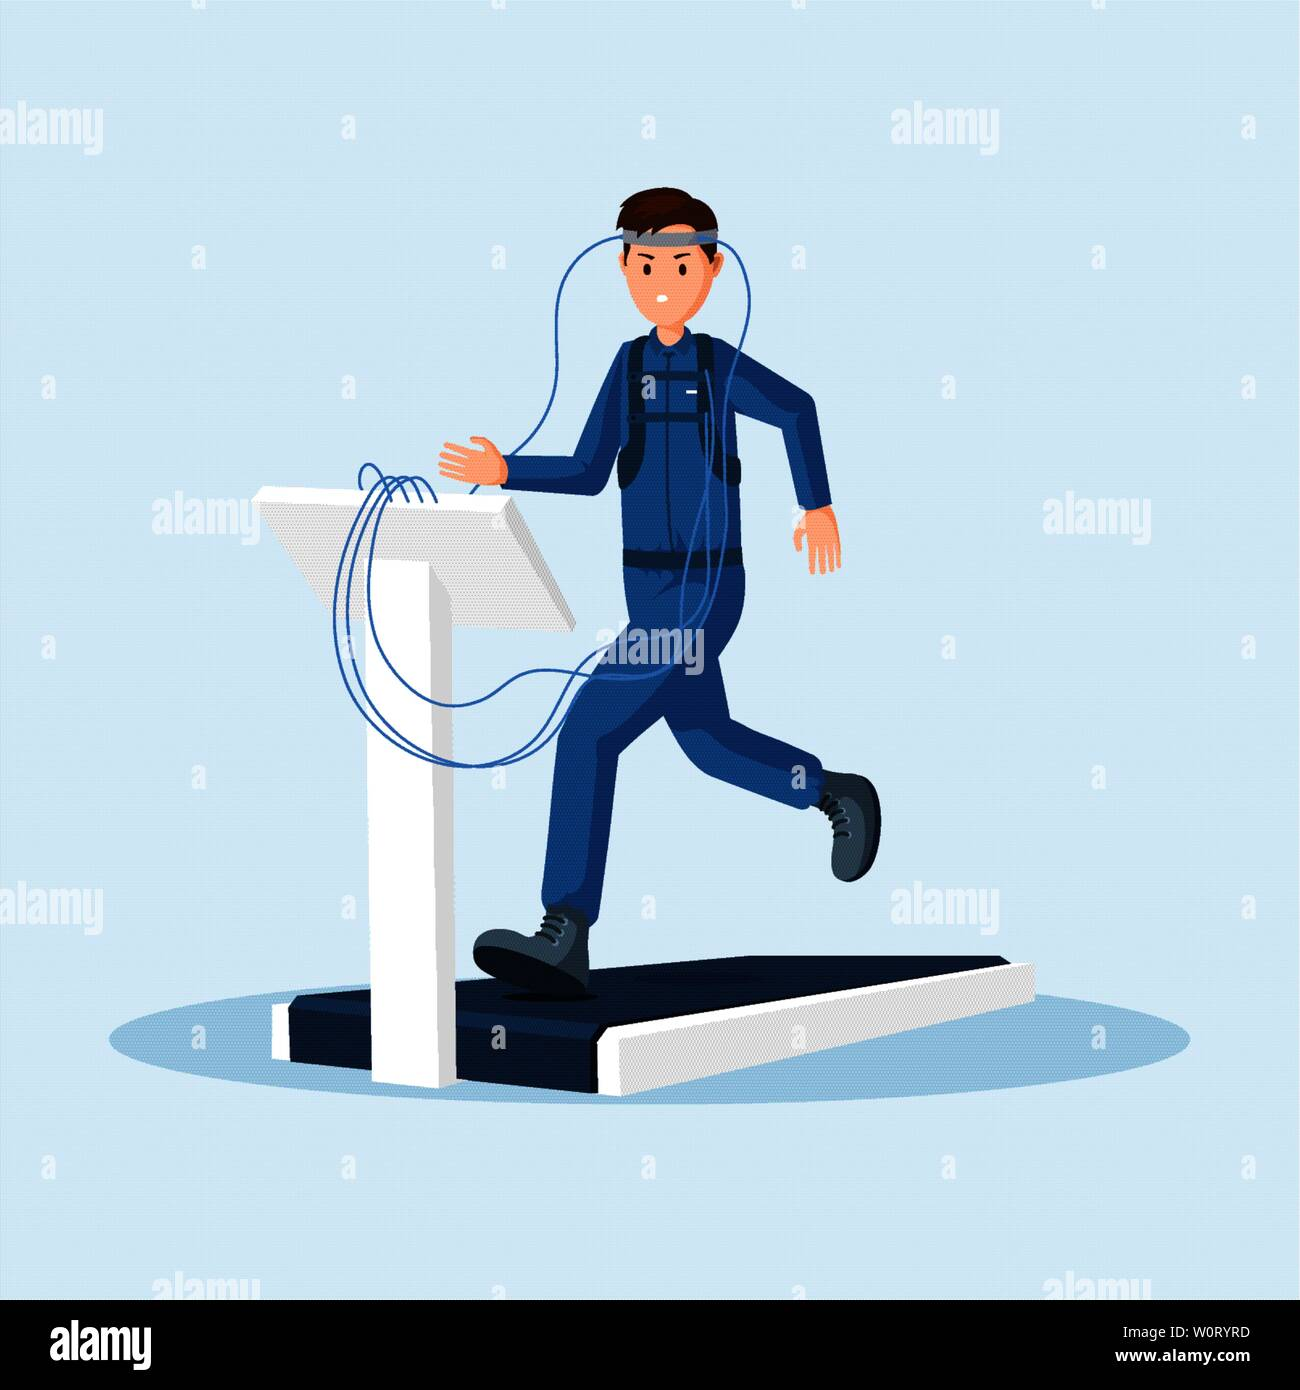 Astronaut physical test flat vector illustration. Spaceman, cosmonaut space station training, using treadmill exercise machine cartoon character. Space mission preparing isolated clipart Stock Vector